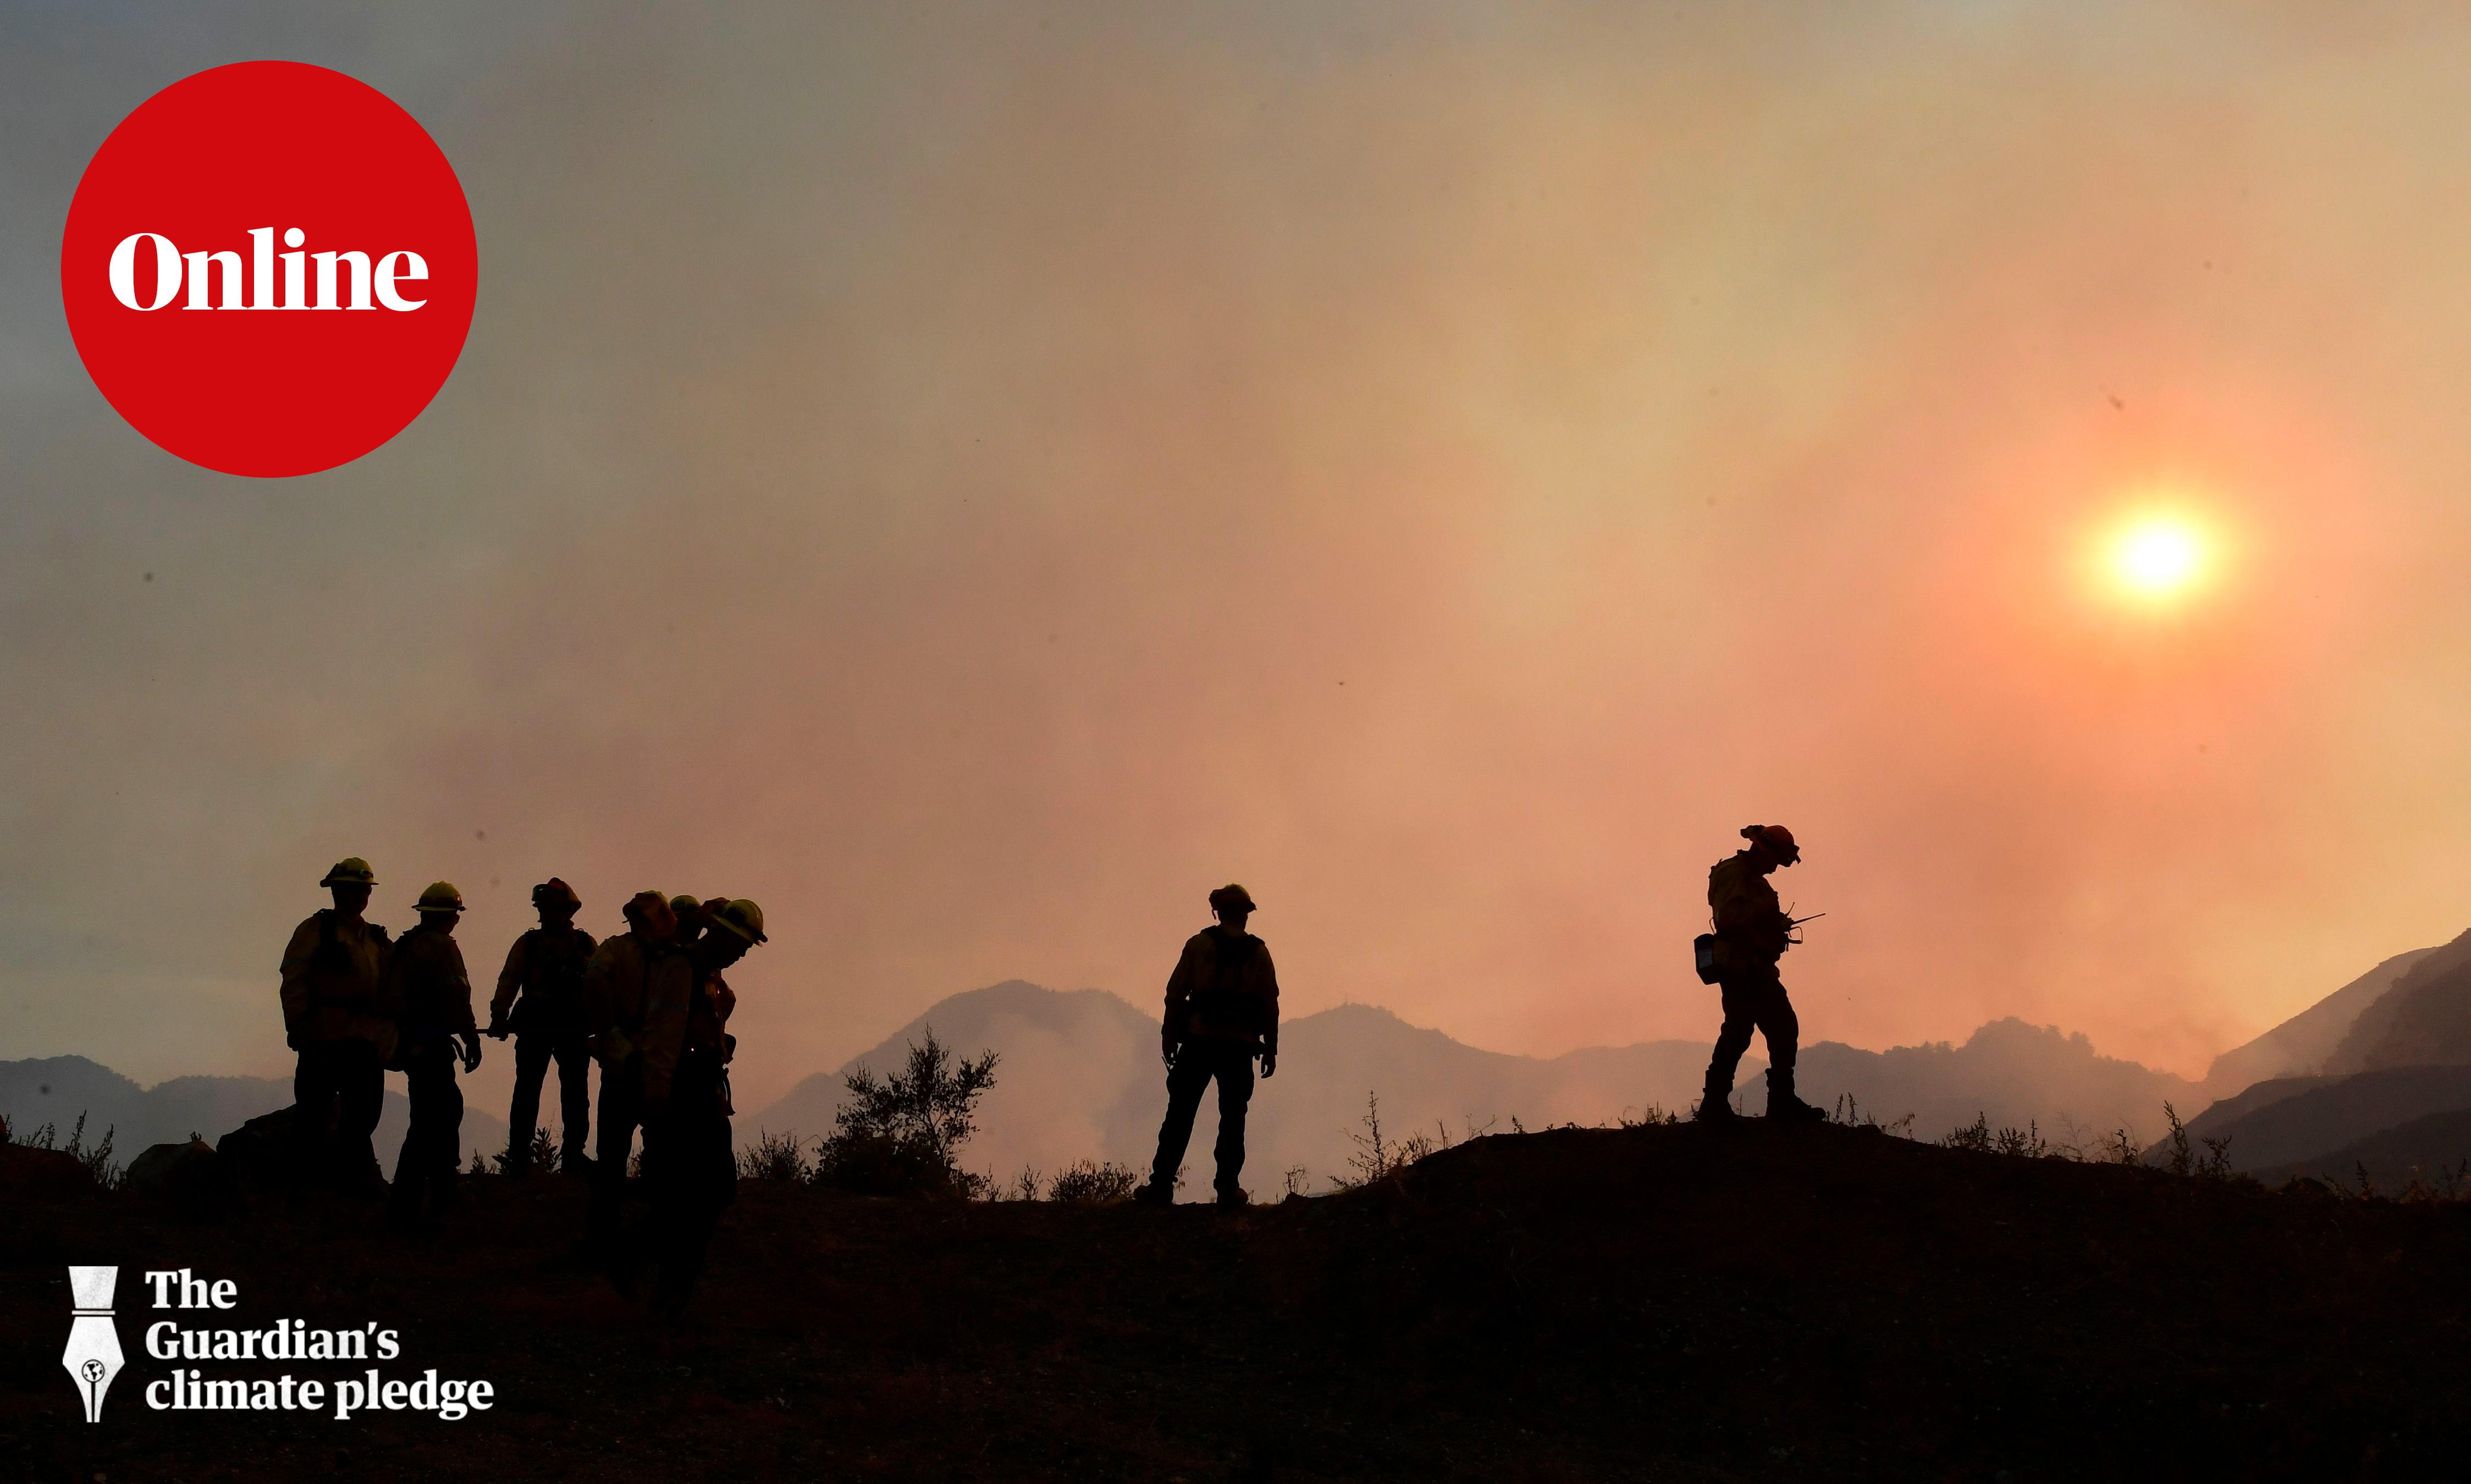 Reporting on the climate emergency: Can the media do better?